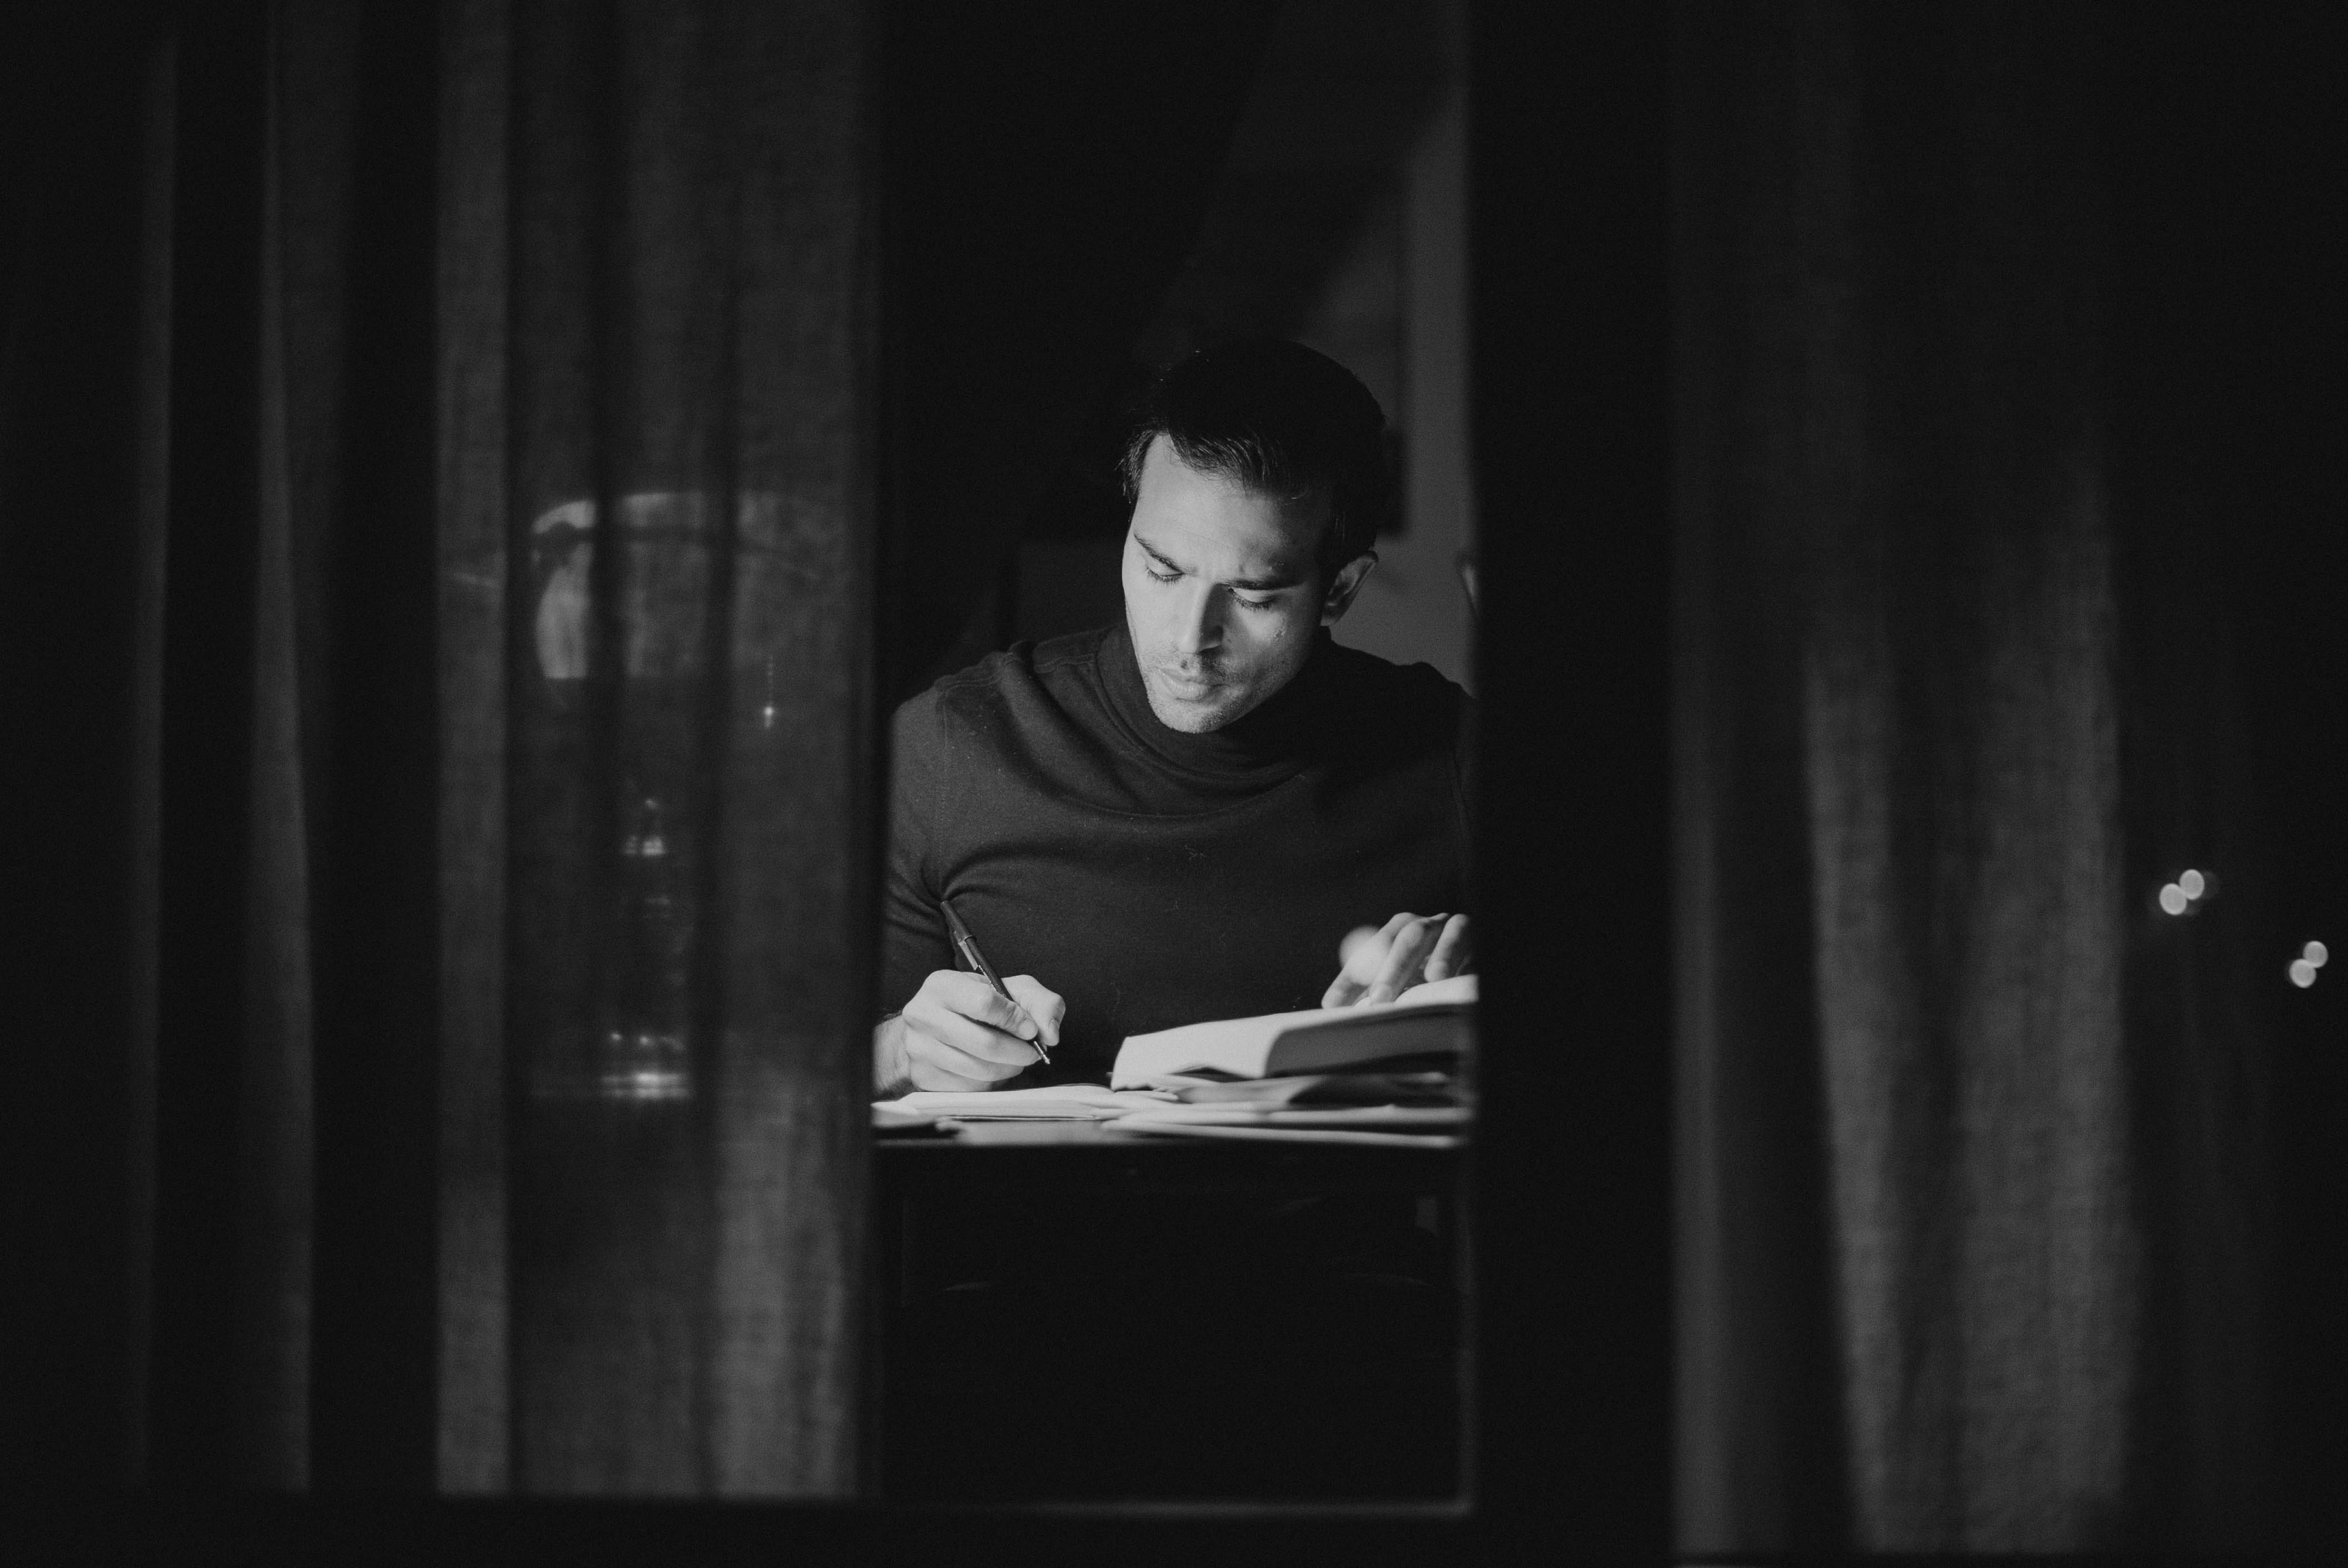 A man writing with a pen while reading.